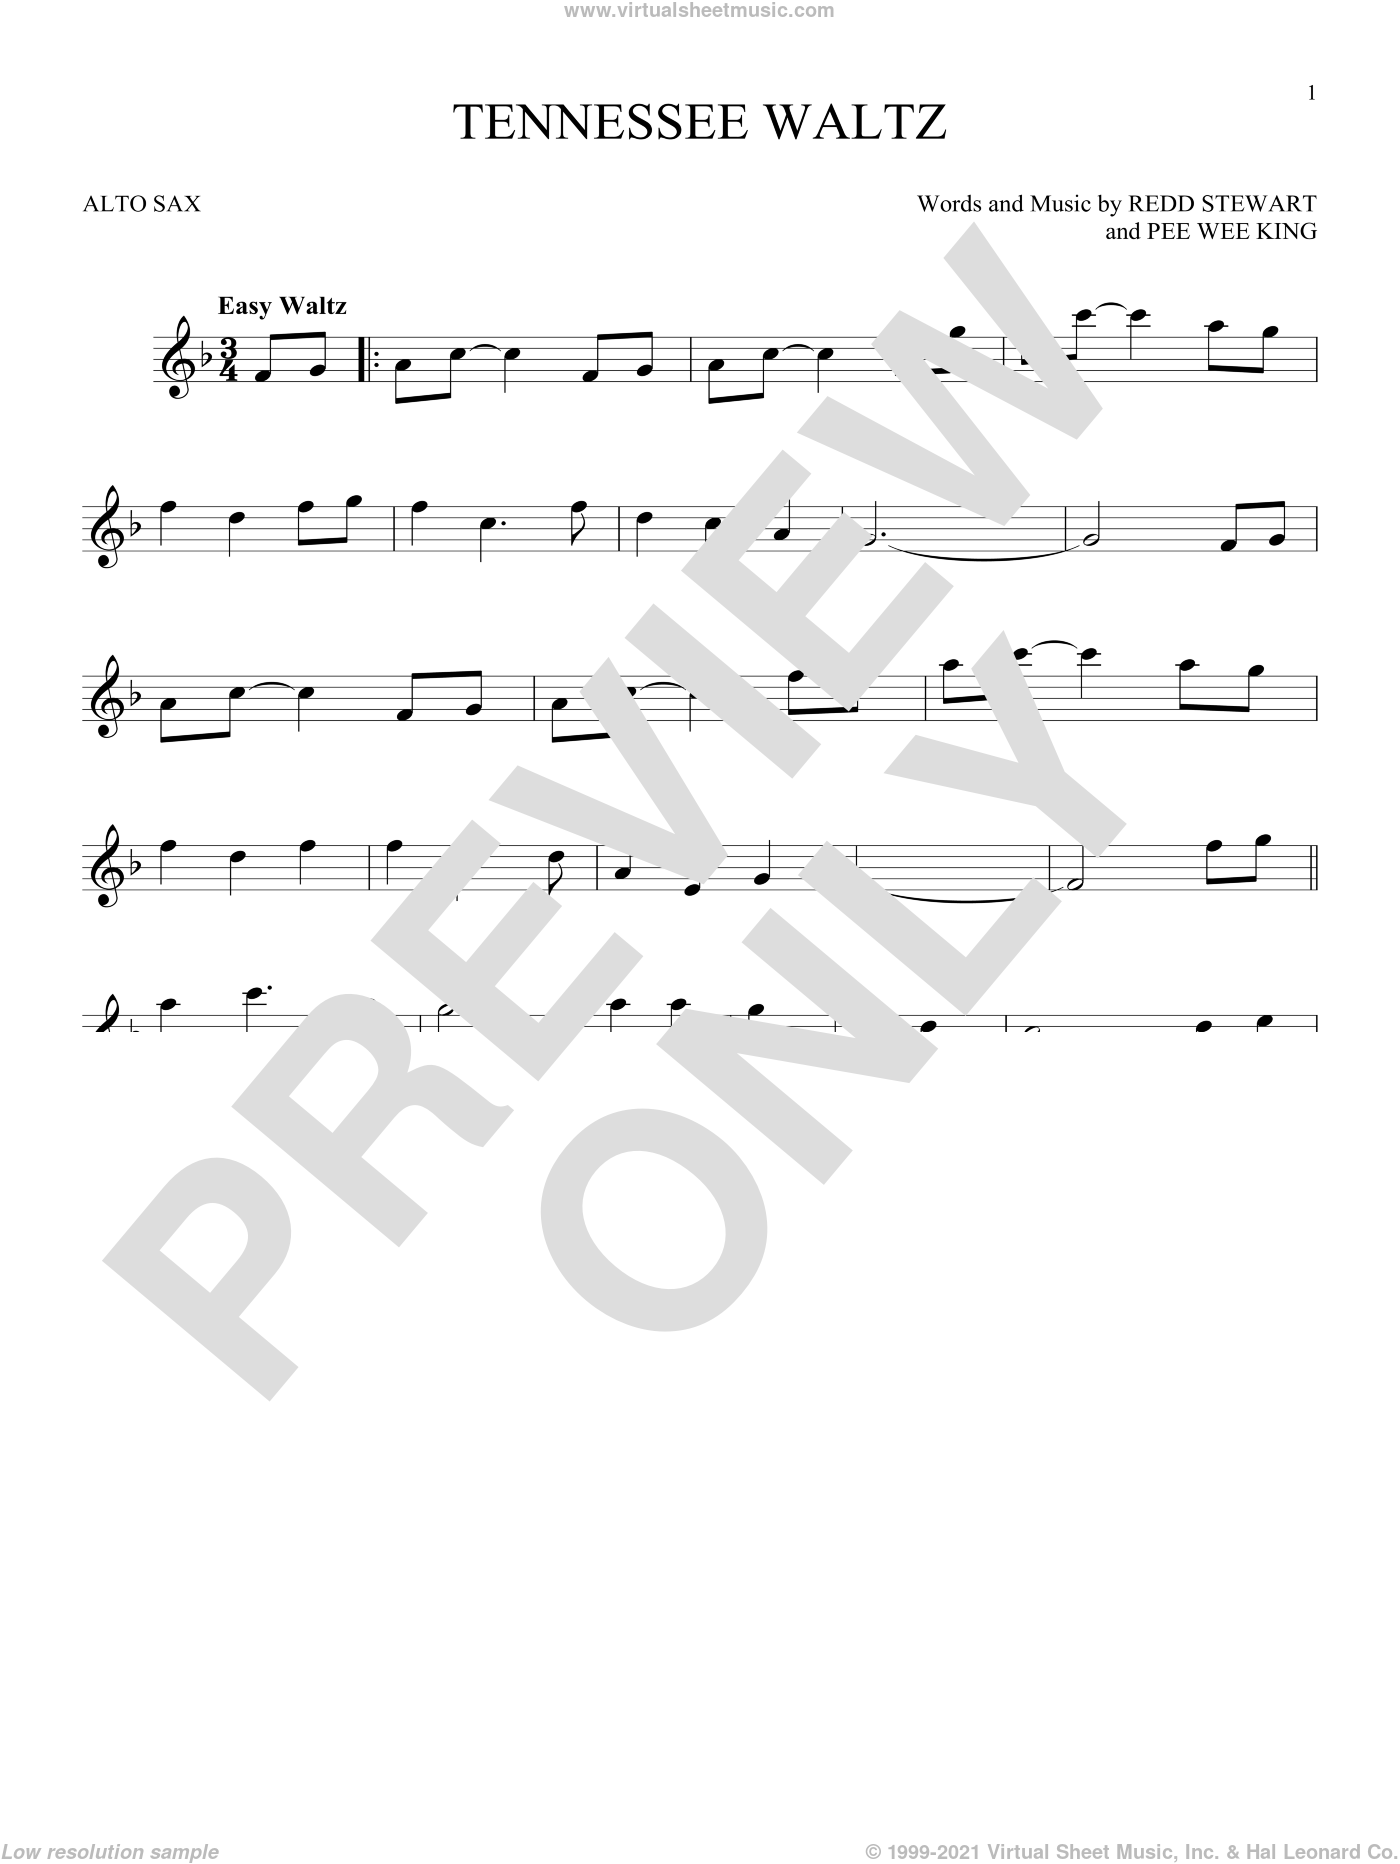 Tennessee Waltz sheet music for alto saxophone solo by Pee Wee King, Patti Page, Patty Page and Redd Stewart, intermediate skill level